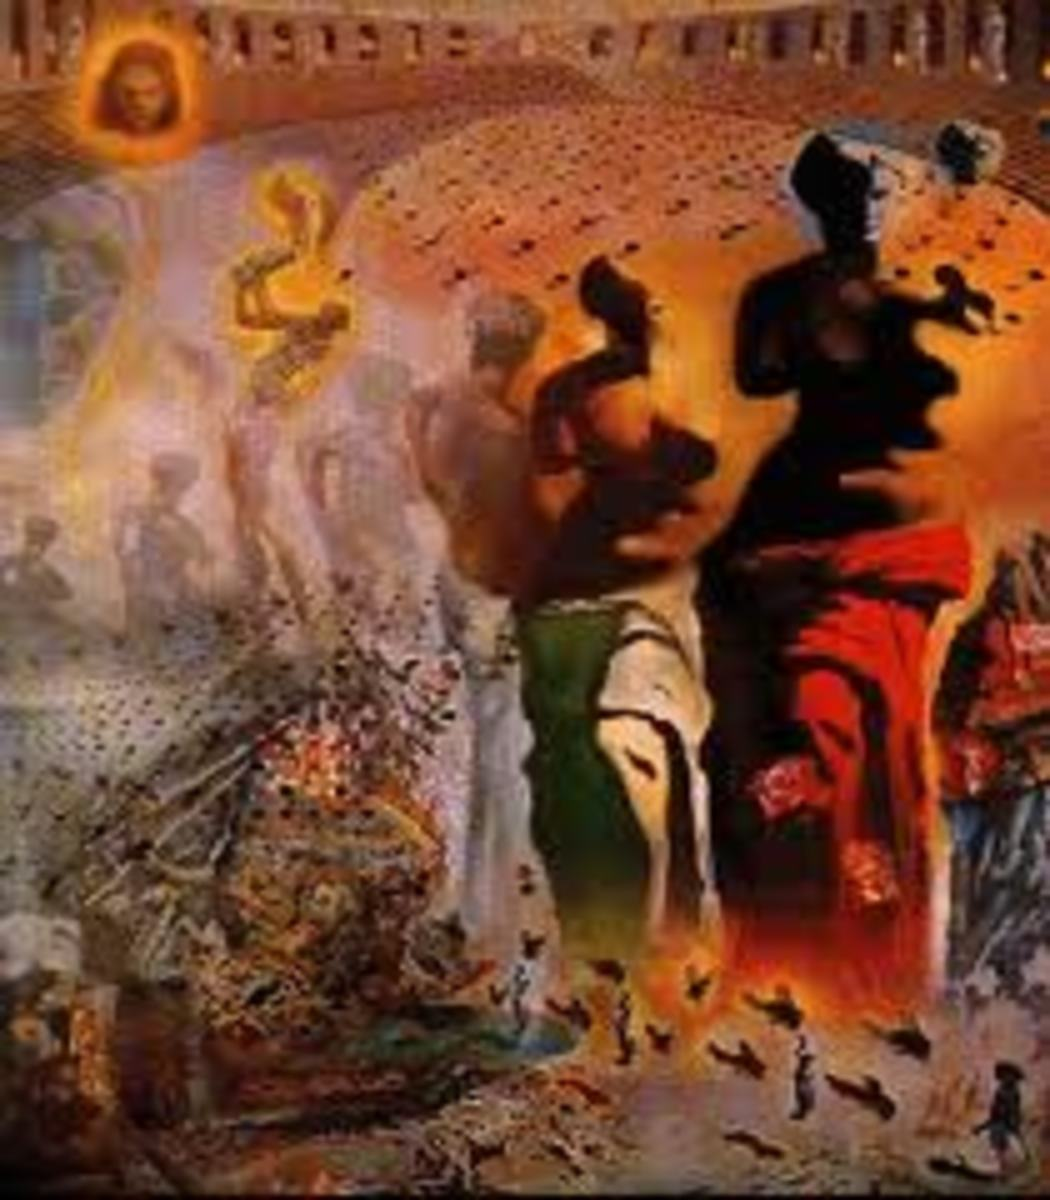 Salvadore Dali - The Hallucinogenic Toreador